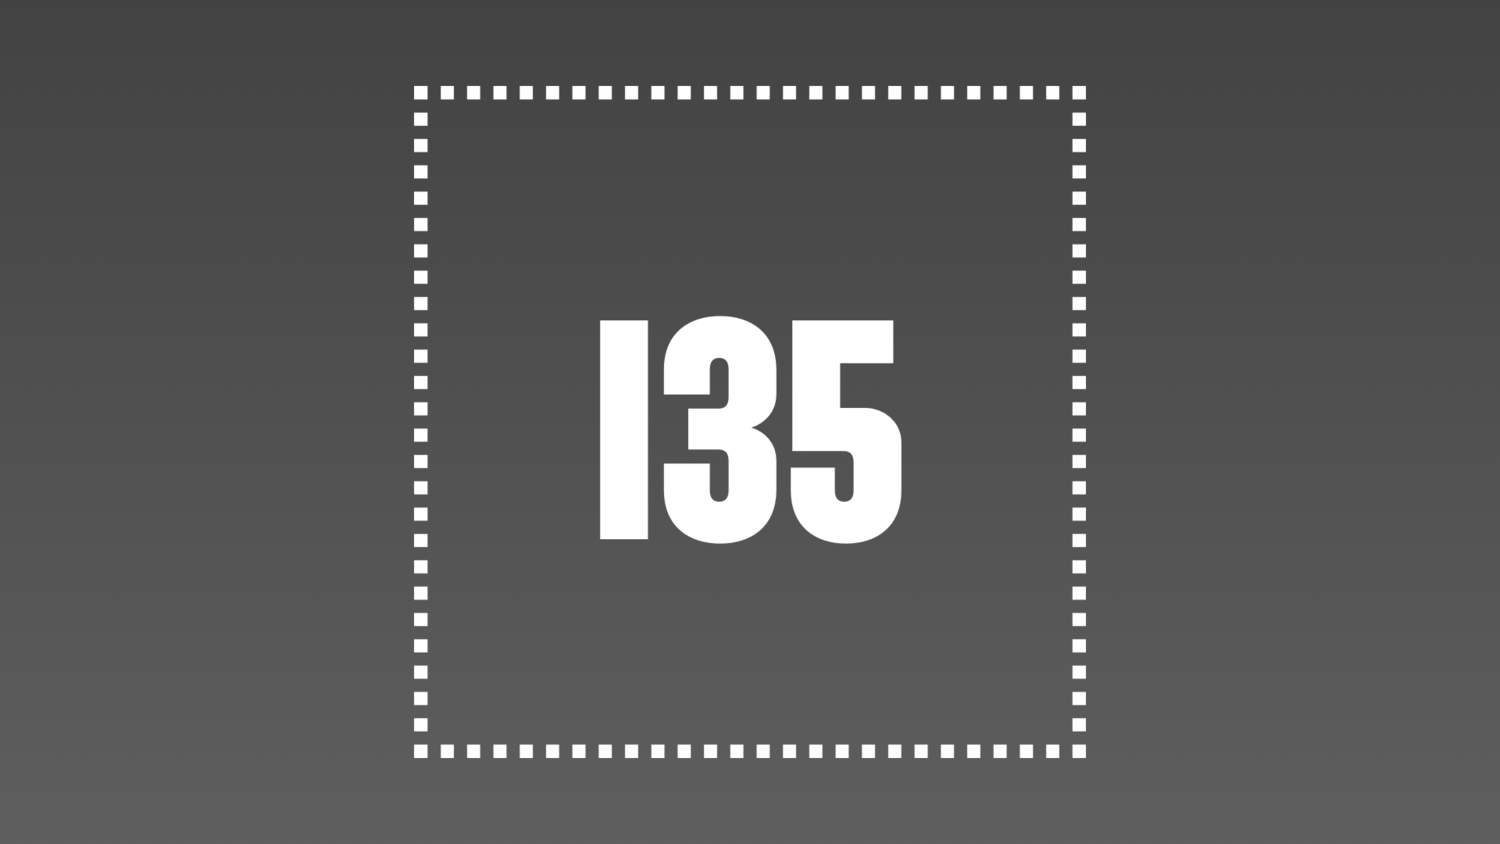 H.I. #135: Place Your Bets